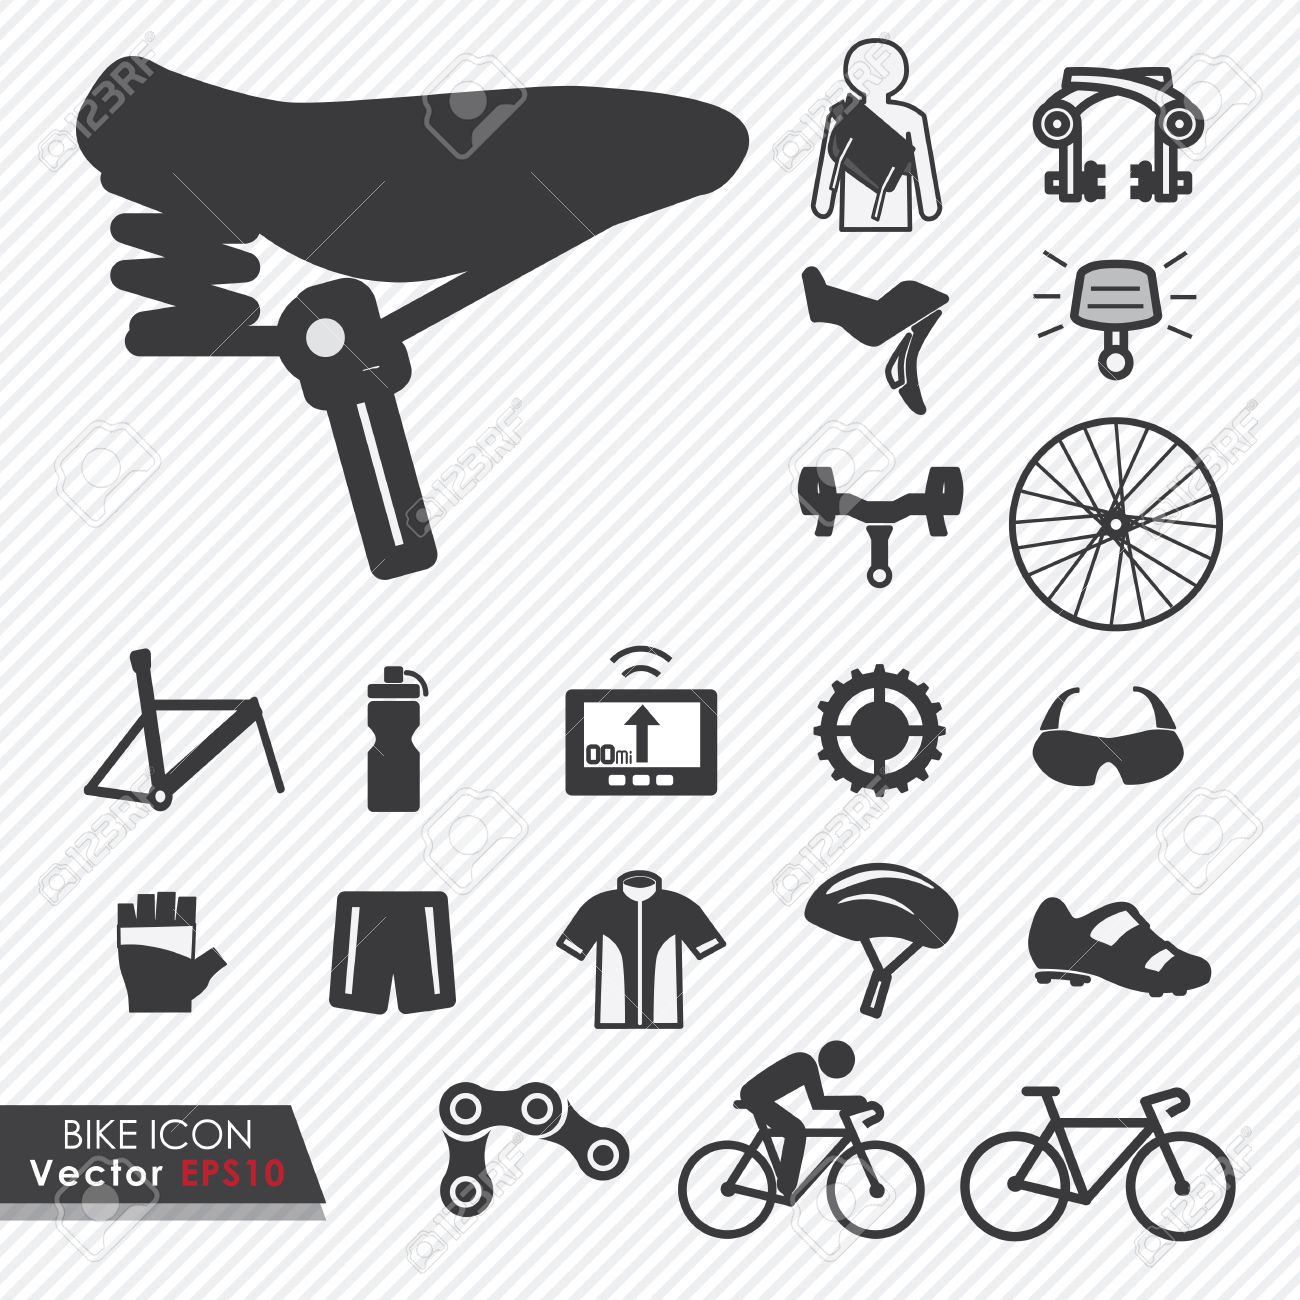 0bc68a9f833 Bike tools and equipment part and accessories set vector icon Stock Vector  - 27373197